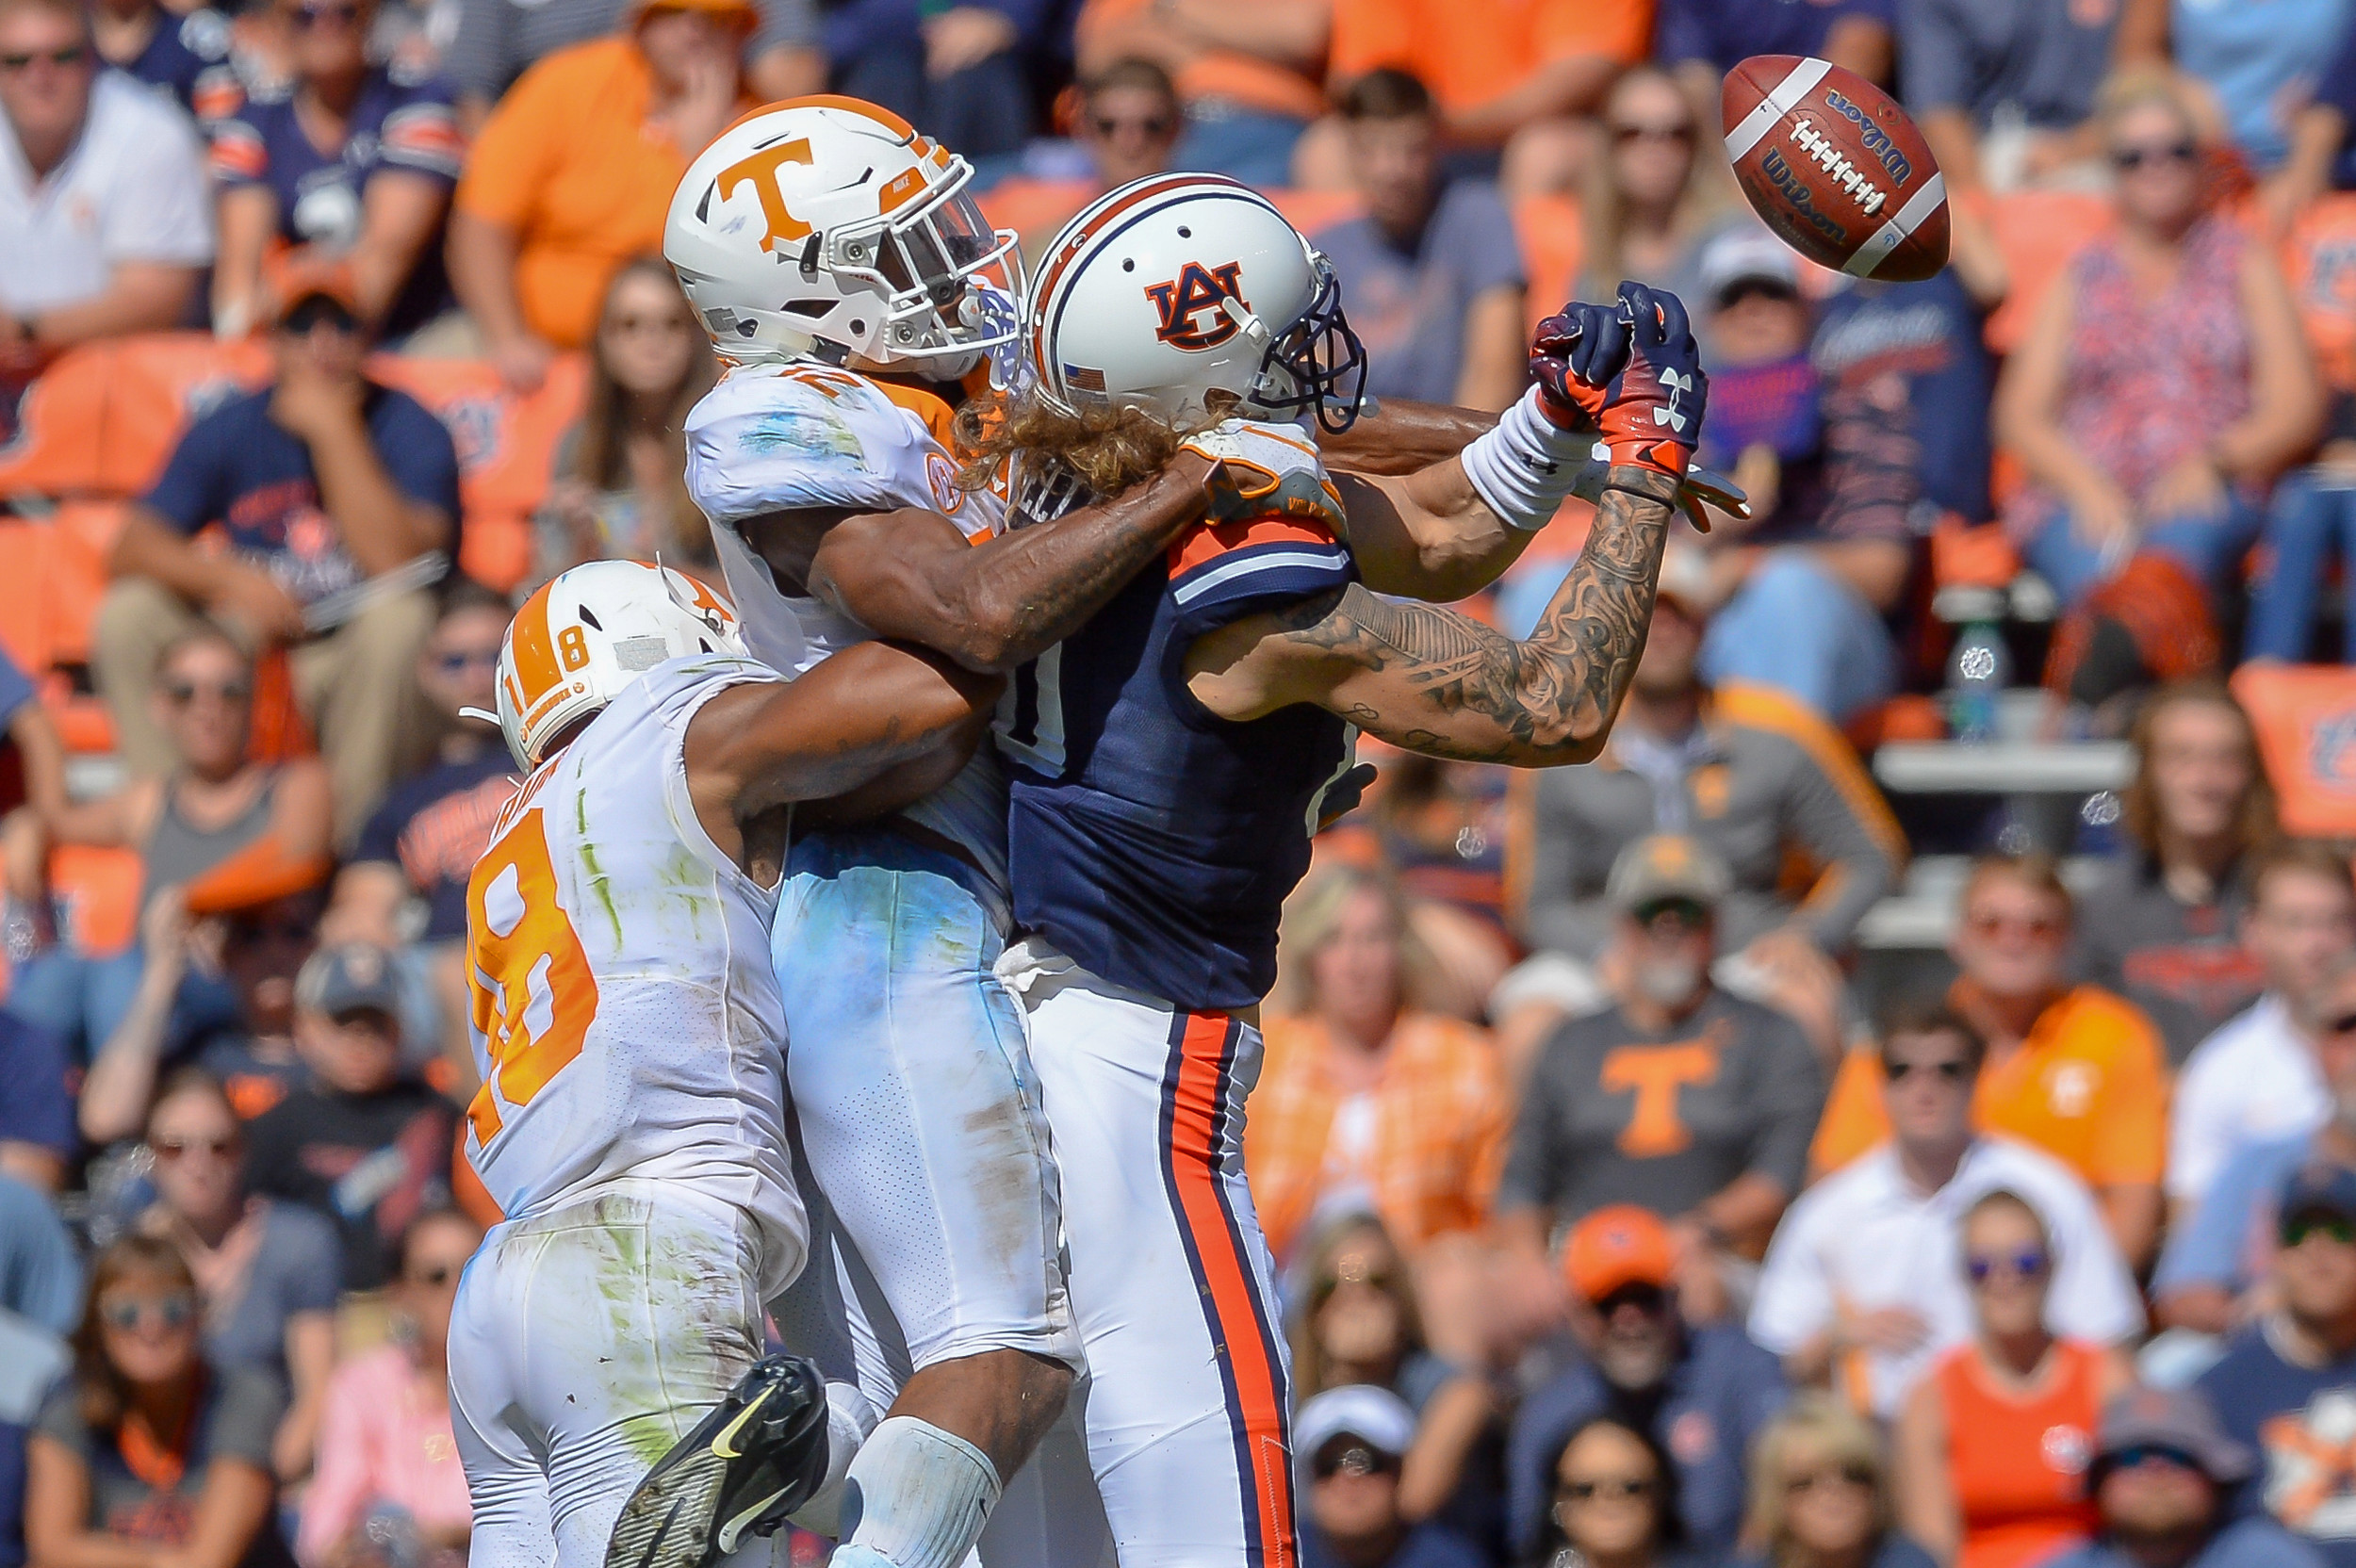 Tennessee Volunteers defensive back Shawn Shamburger (12) breaks up a pass intended for Auburn Tigers tight end Sal Cannella (80) during the second half of Saturday's game, at Jordan-Hare Stadium in Auburn, AL. Daily Mountain Eagle -  Jeff Johnsey